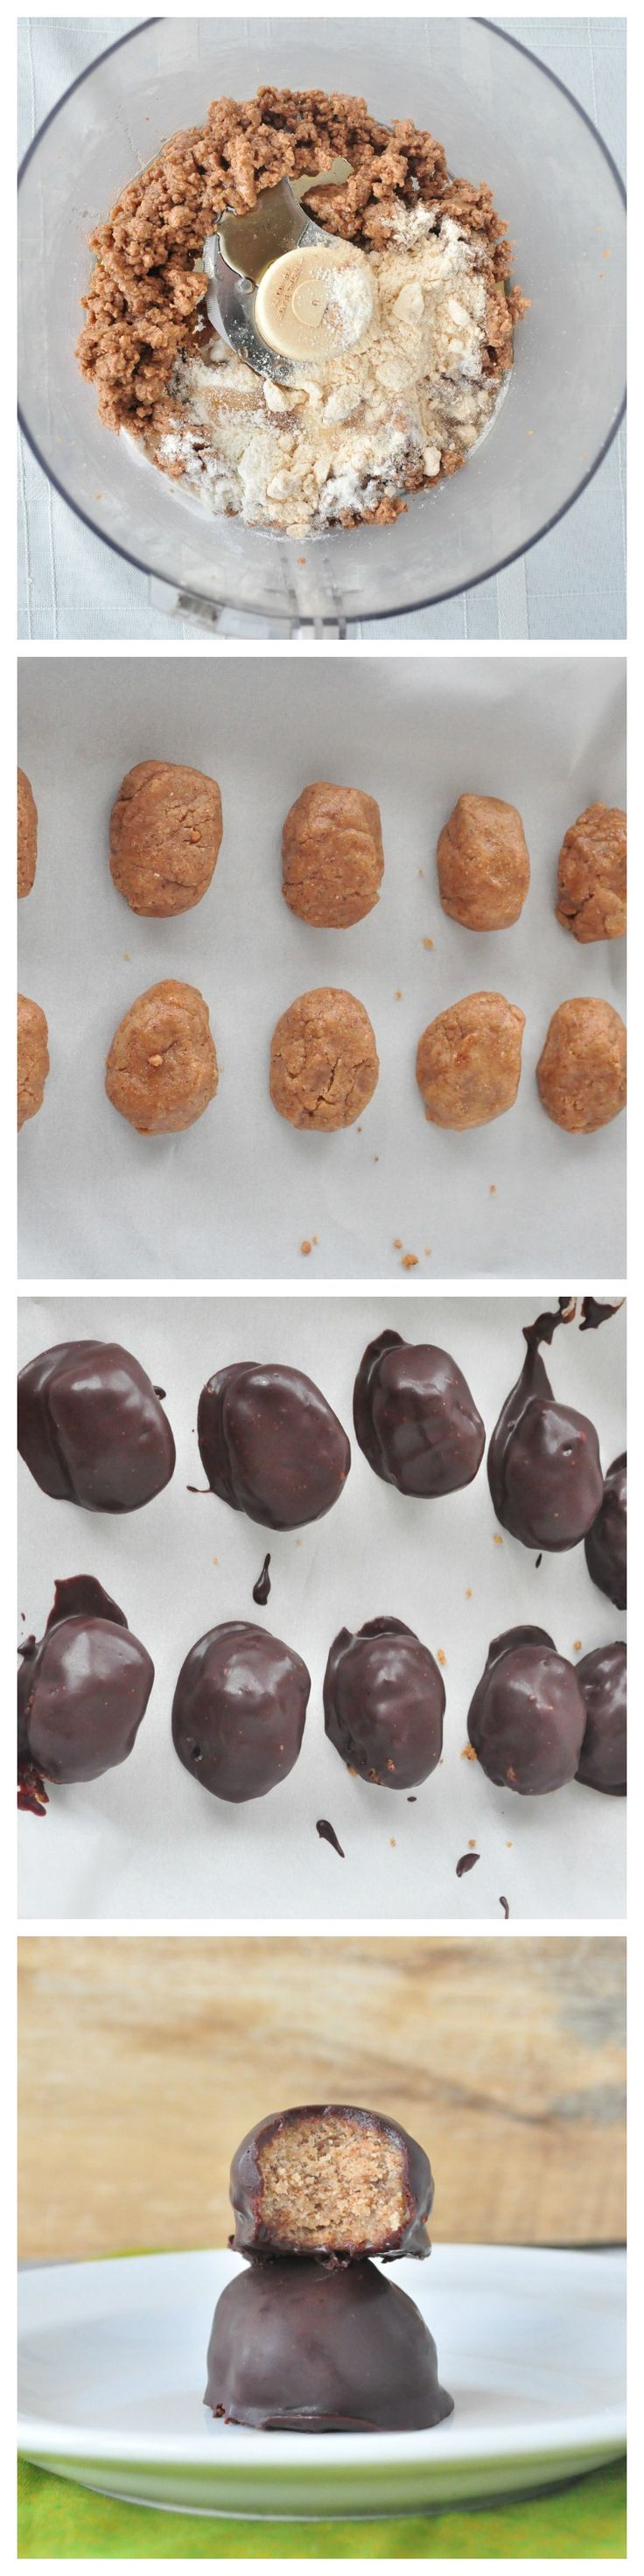 Copycat Reese's Peanut Butter Eggs. All you need is 5 ingredients to make a healthier, homemade version of the Reese's egg. If you use All Purpose flour it only takes 2 T.